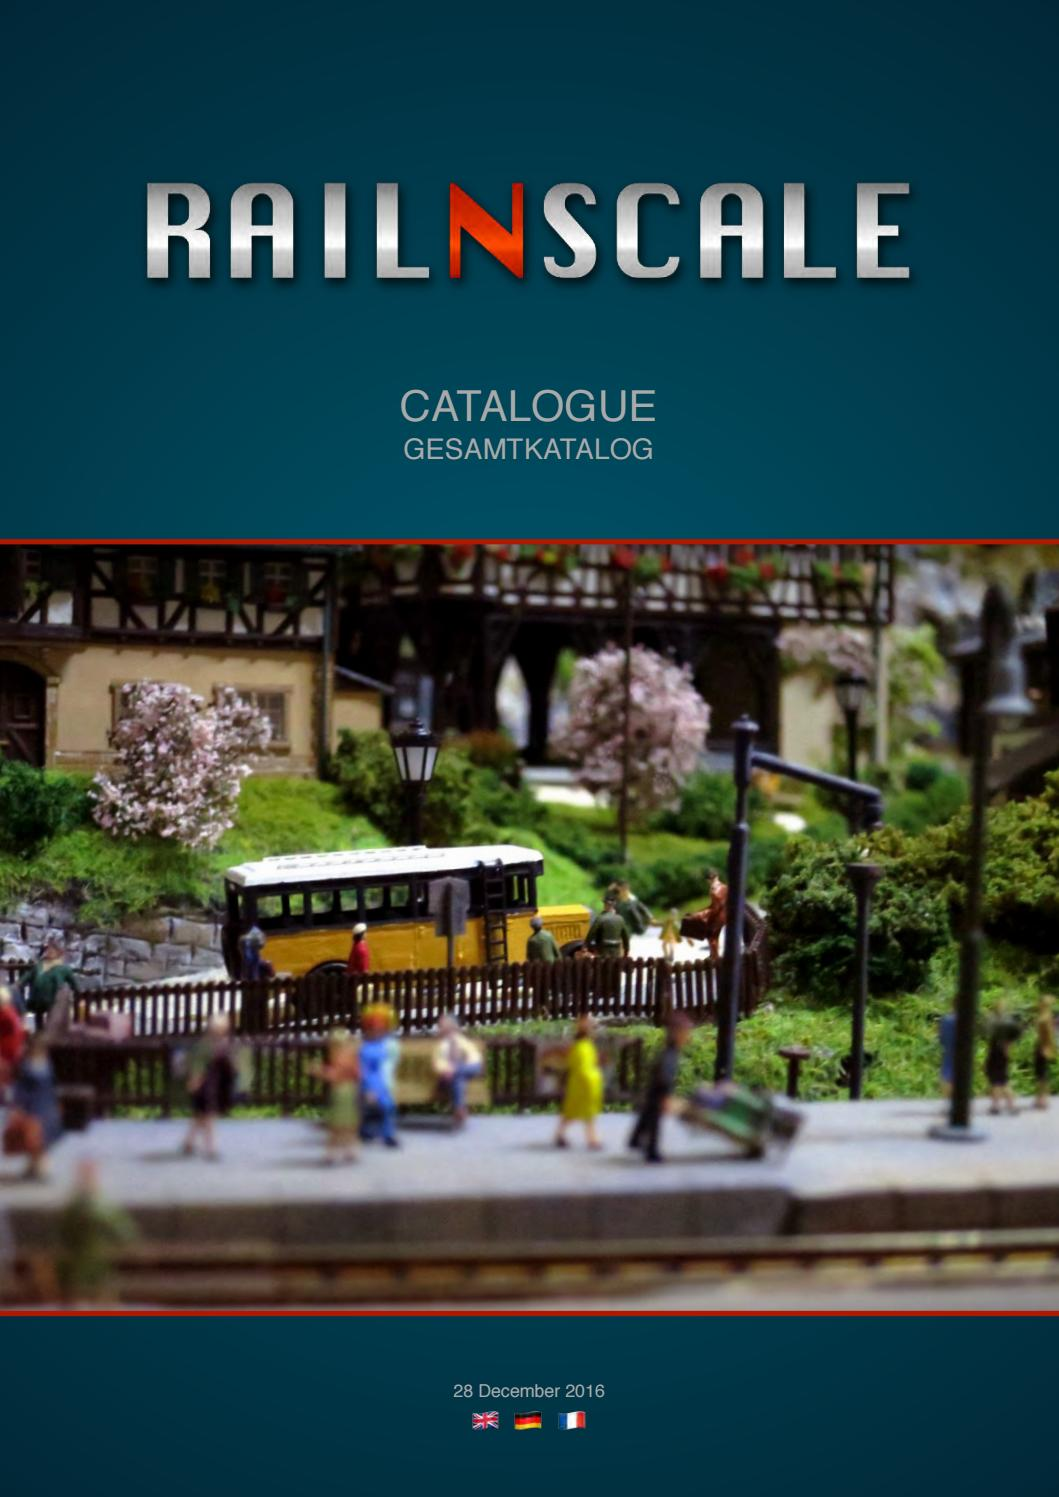 Railnscale 2017 by modellismoferroviario.it - issuu